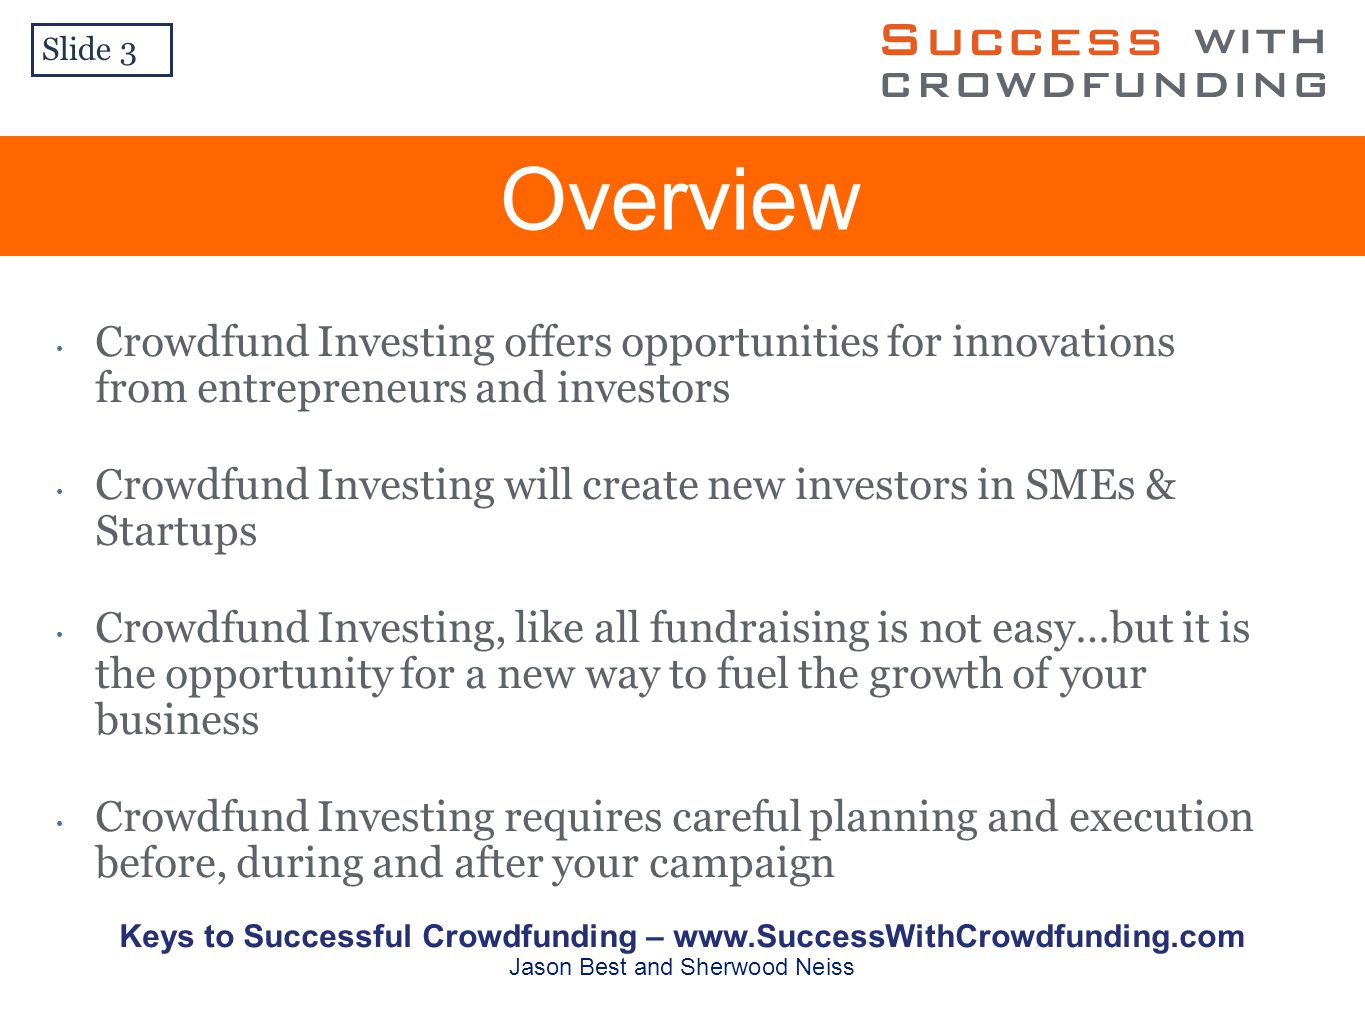 Overview Slide 3 Crowdfund Investing offers opportunities for innovations from entrepreneurs and investors Crowdfund Investing will create new investo